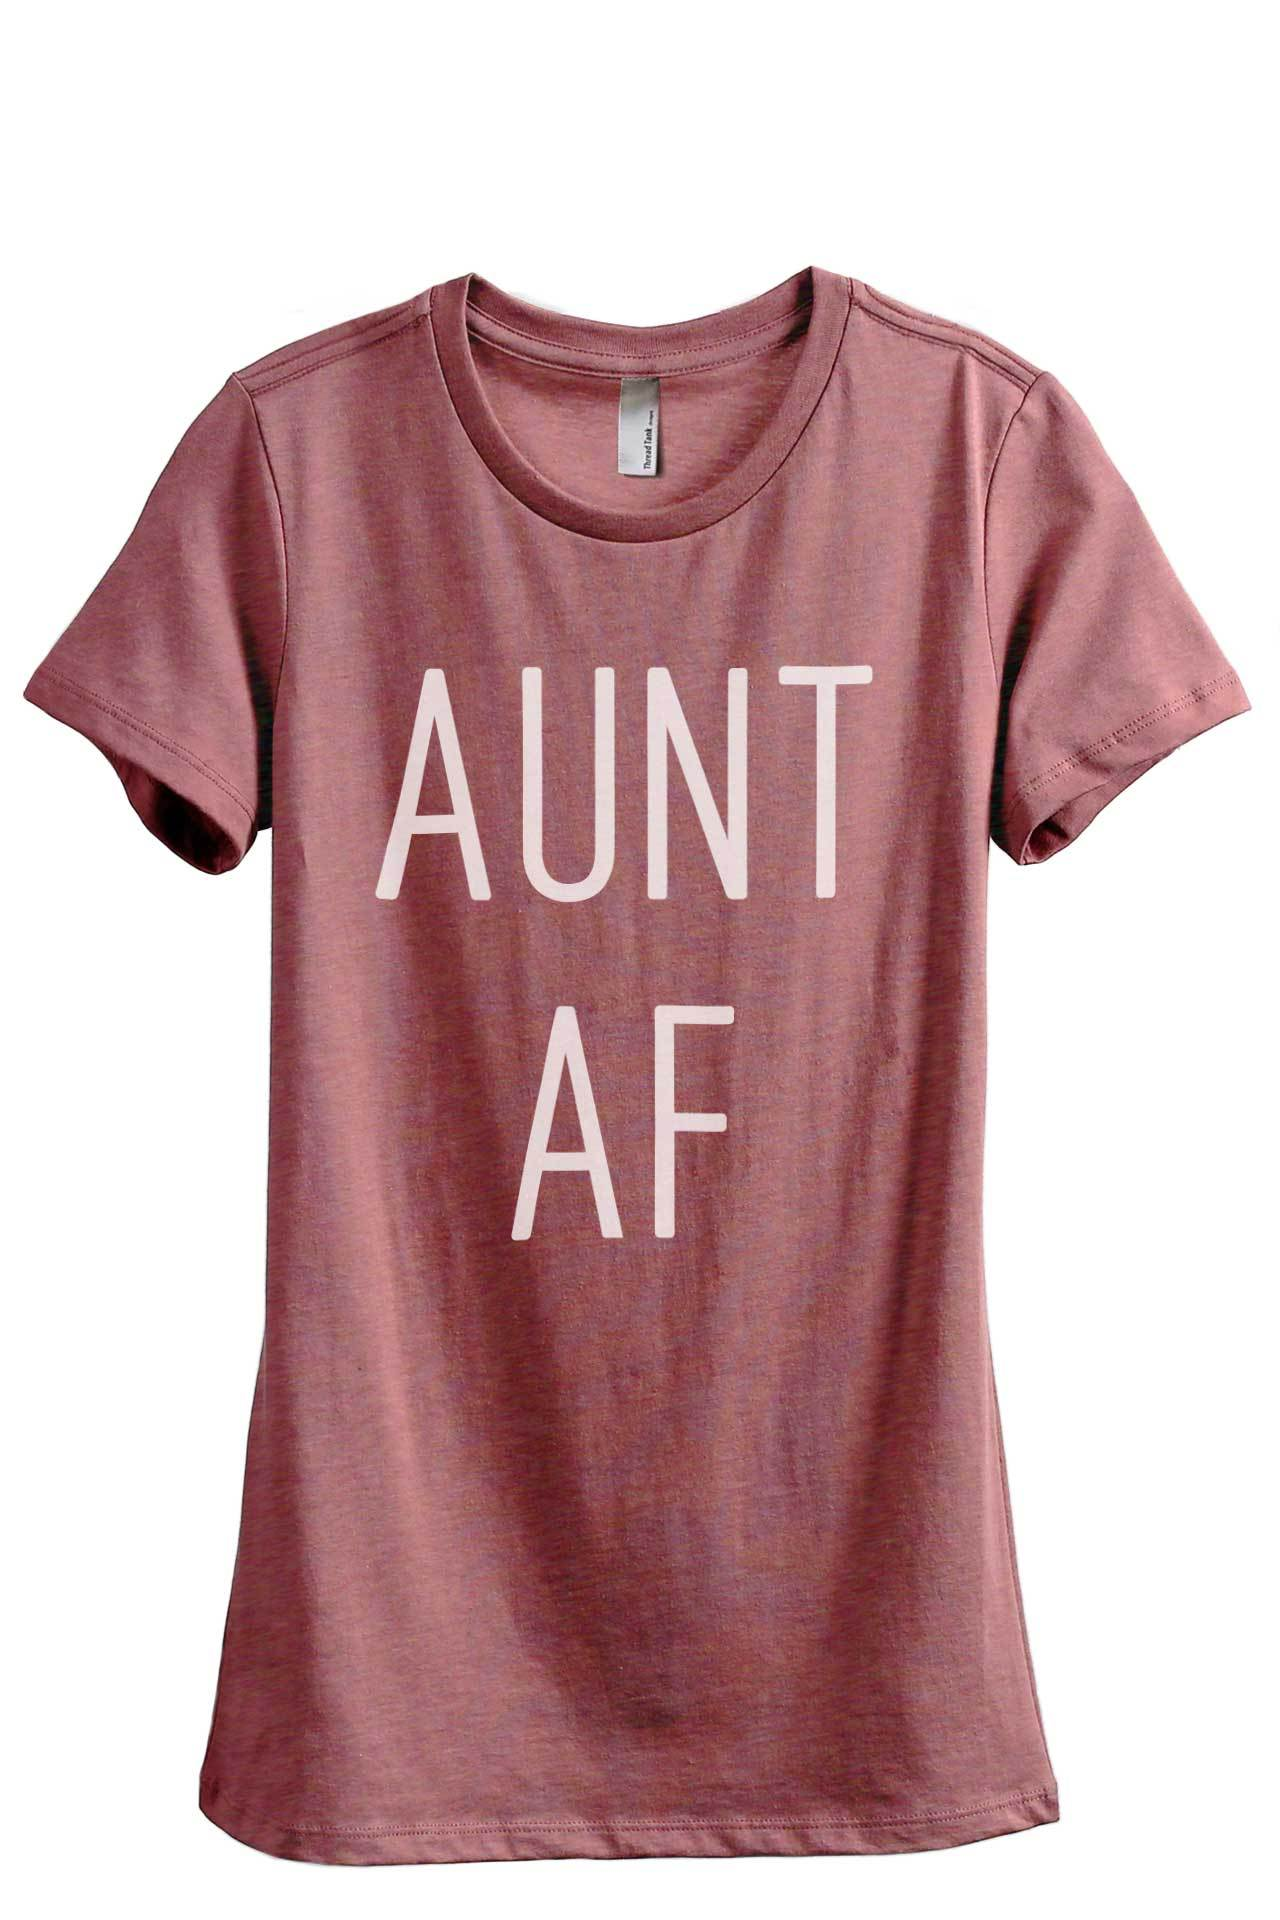 Aunt AF - Thread Tank | Stories You Can Wear | T-Shirts, Tank Tops and Sweatshirts